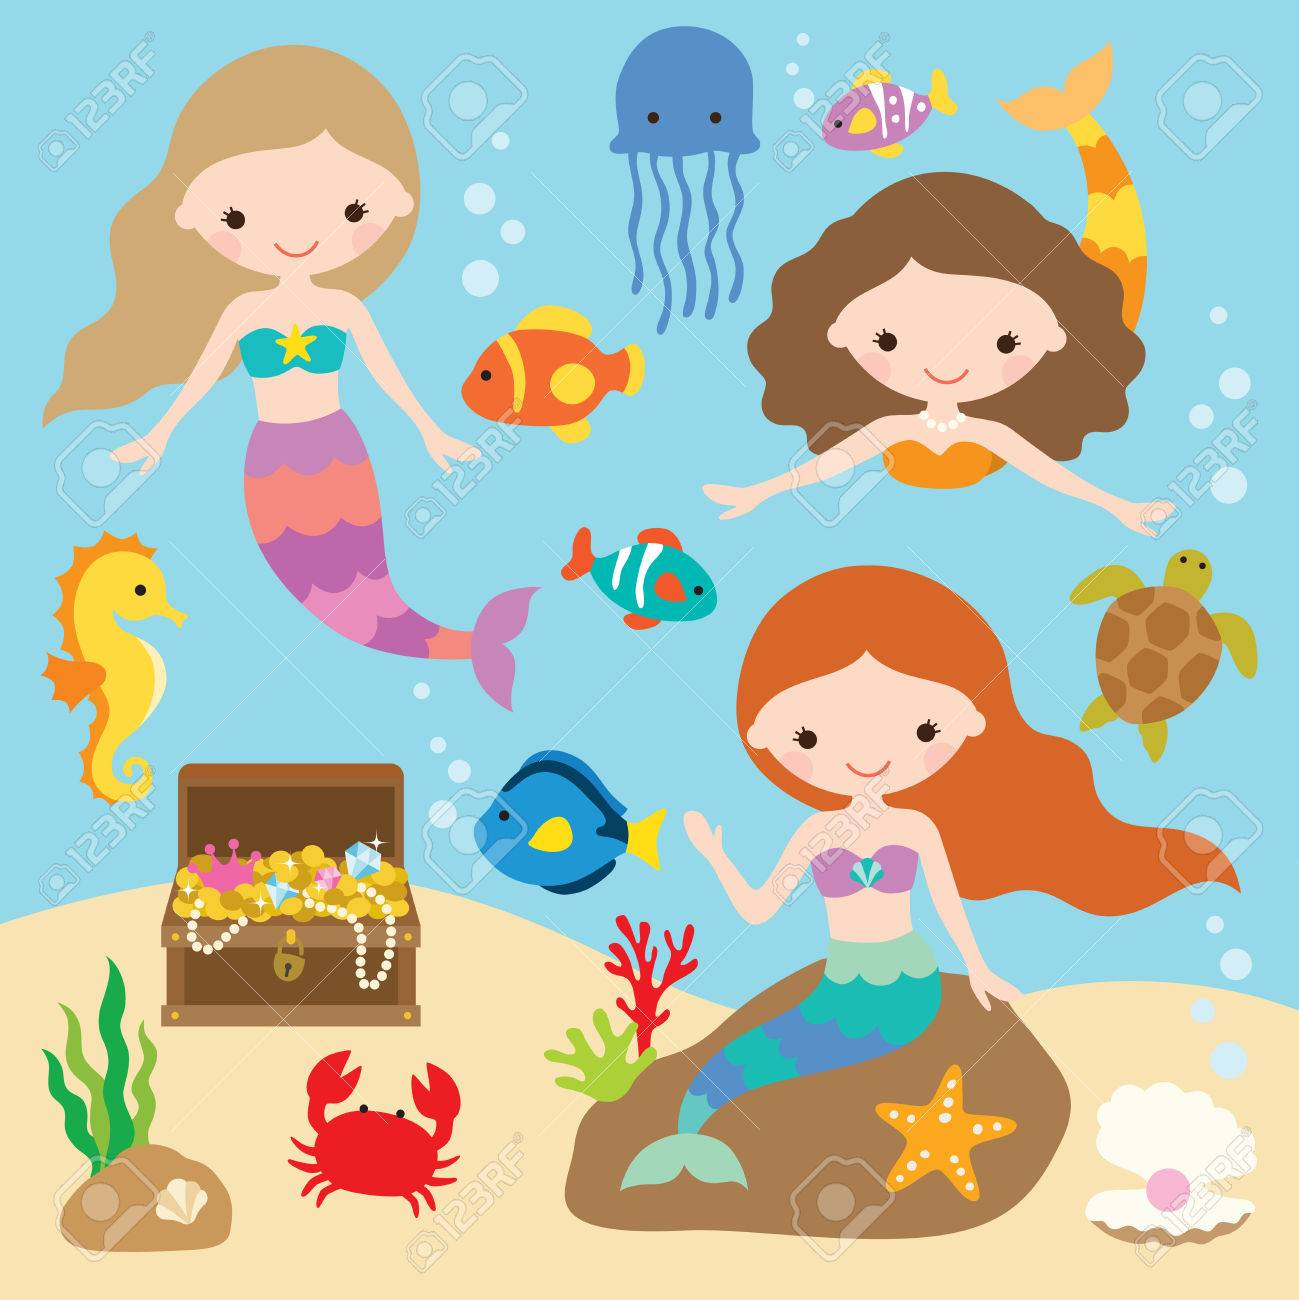 Vector illustration of cute little mermaids with fishes, jellyfish, starfish, crab, turtle, seahorse, shells, and treasure chest under the sea. - 80629955